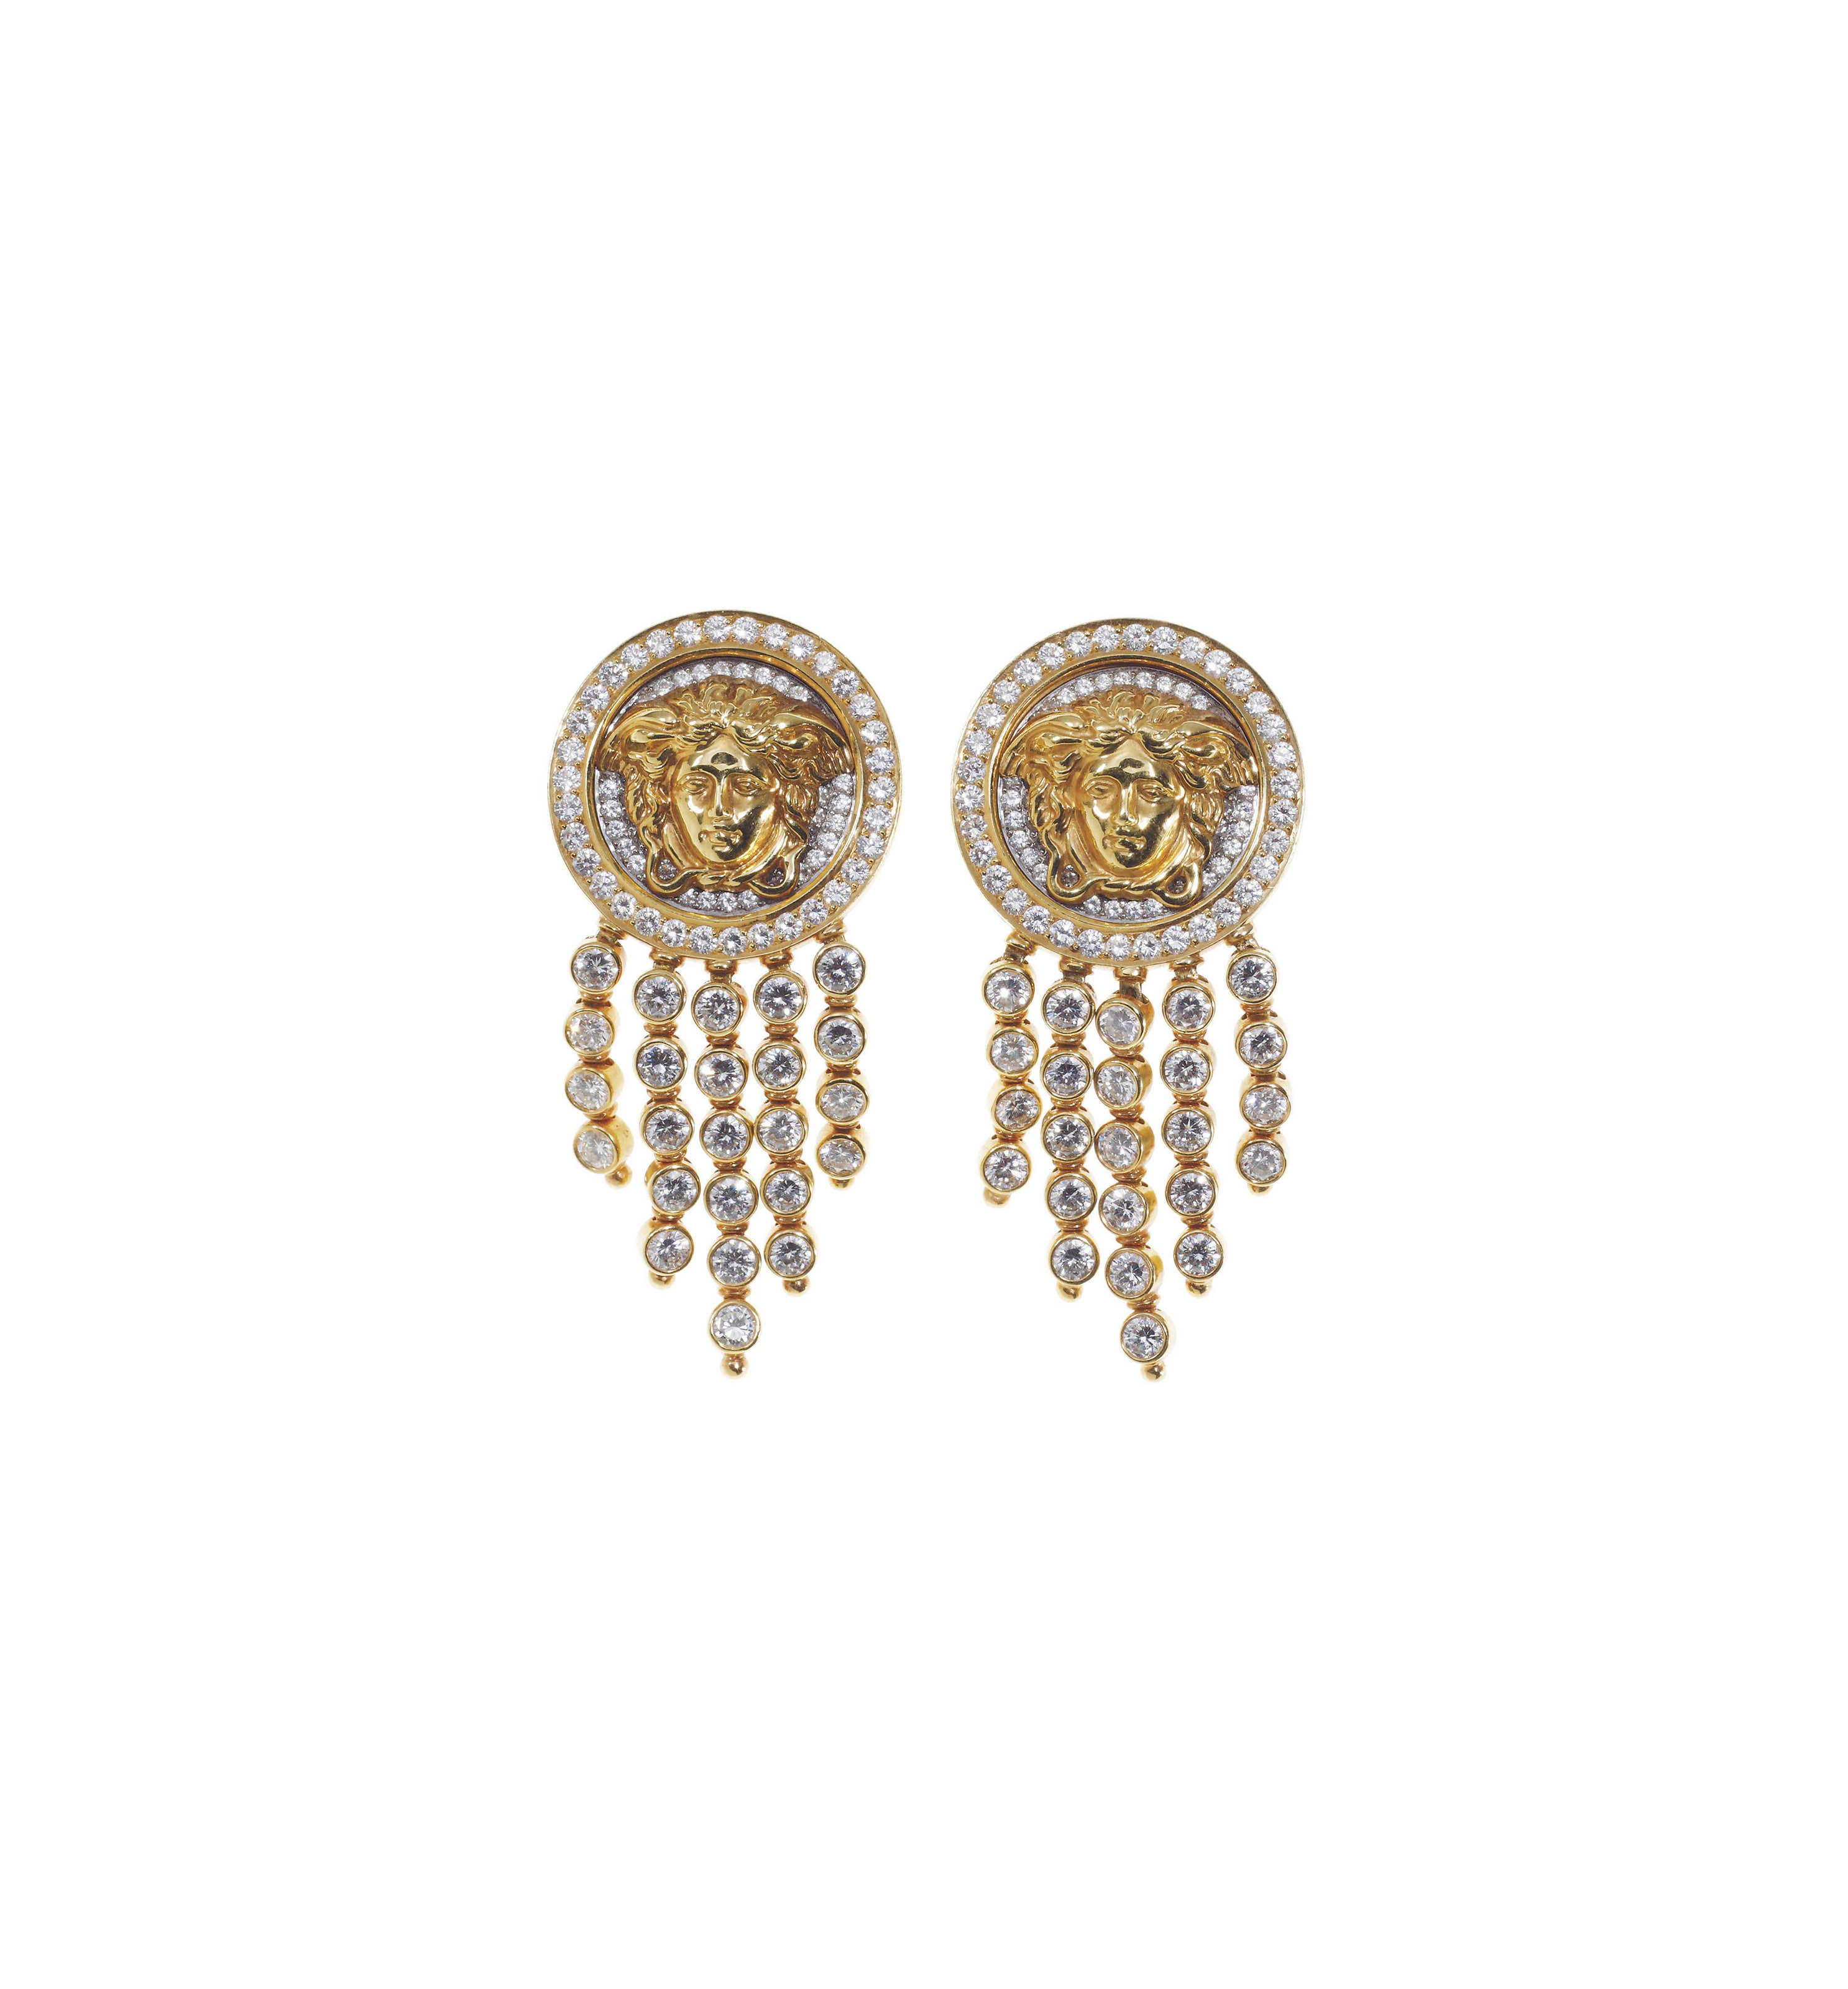 A PAIR OF DIAMOND AND GOLD EAR PENDANTS, BY GIANNI VERSACE